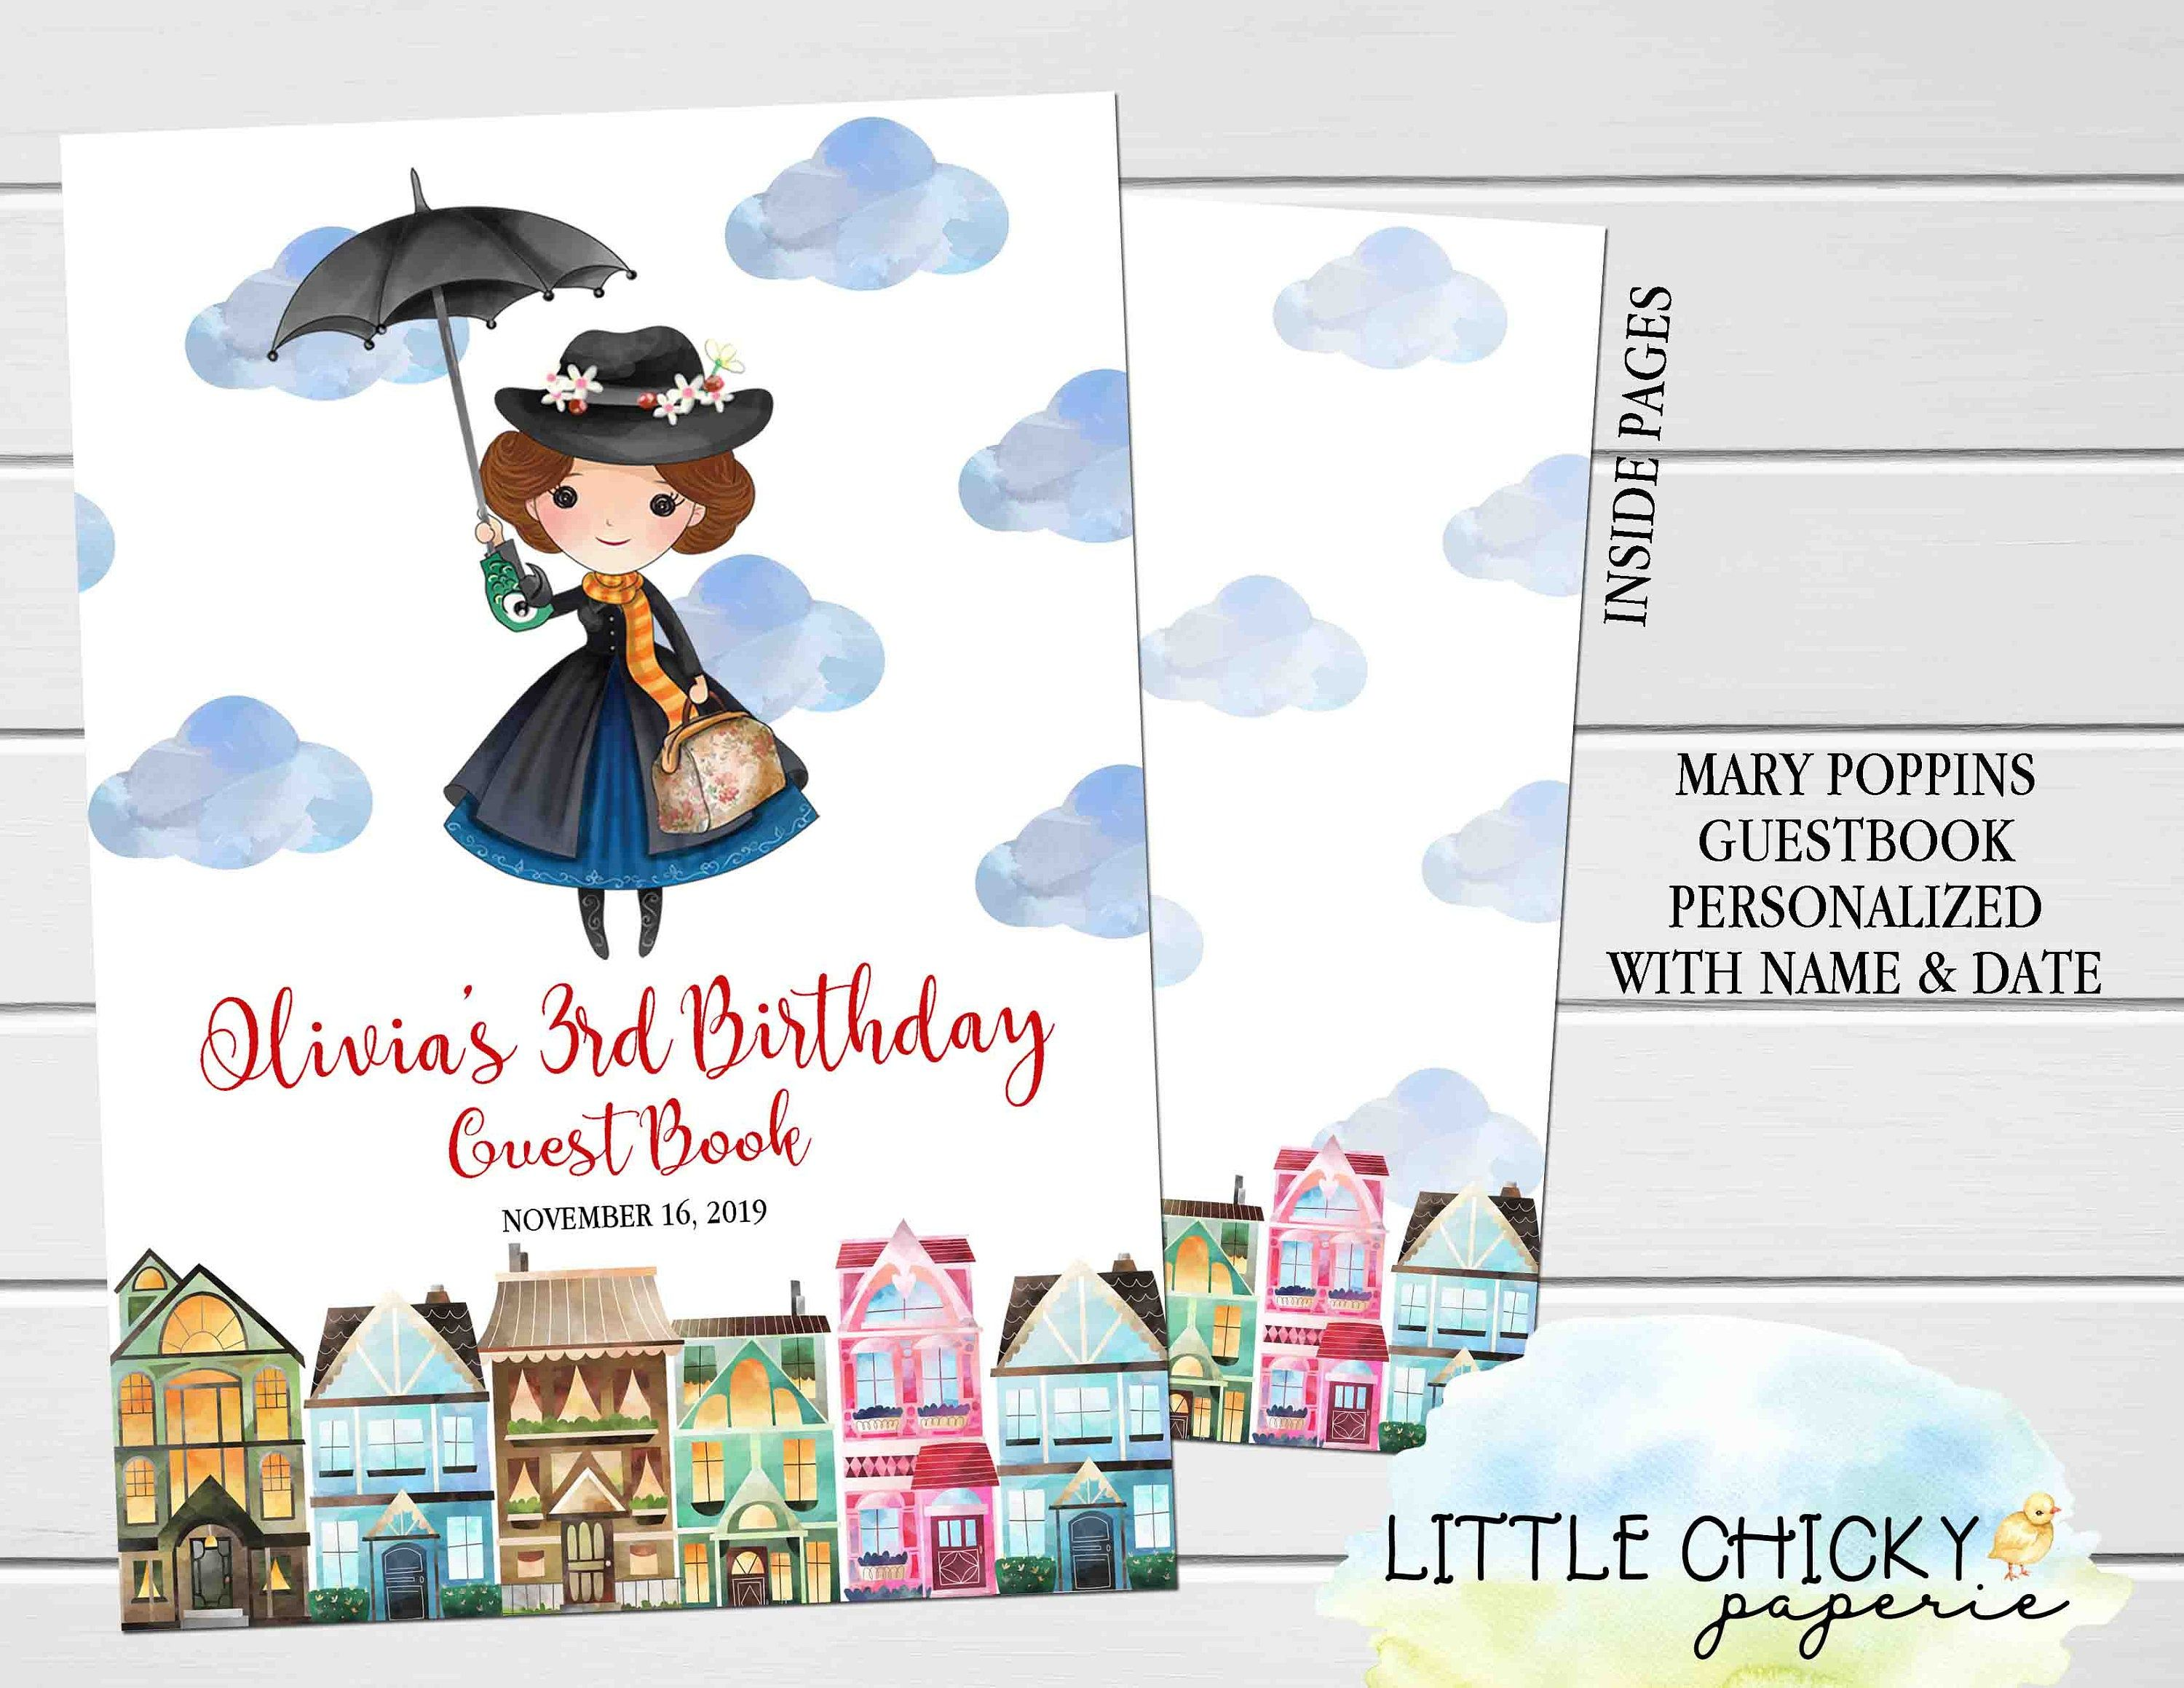 Mary Poppins Birthday Guestbook, Birthday Guest book, Mary Poppins Birthday, Softcover Journal, Personalized Guest Book